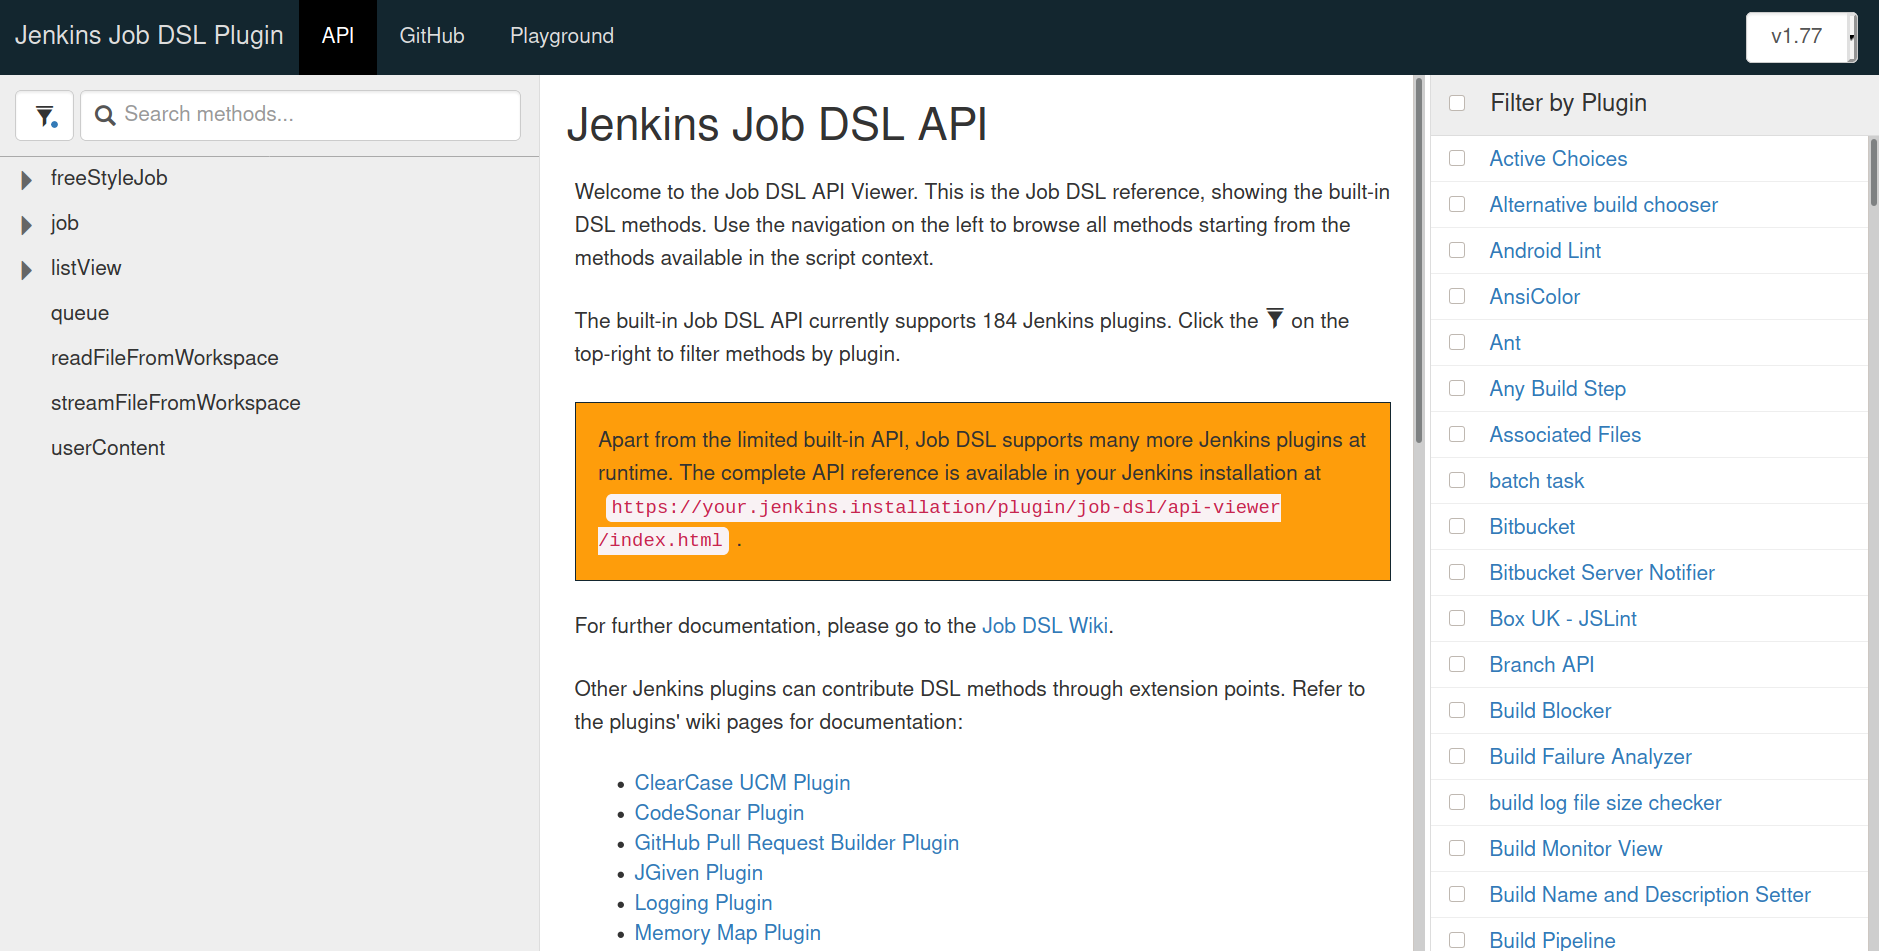 Jenkins Job DSL API reference web page showing only the core APIs